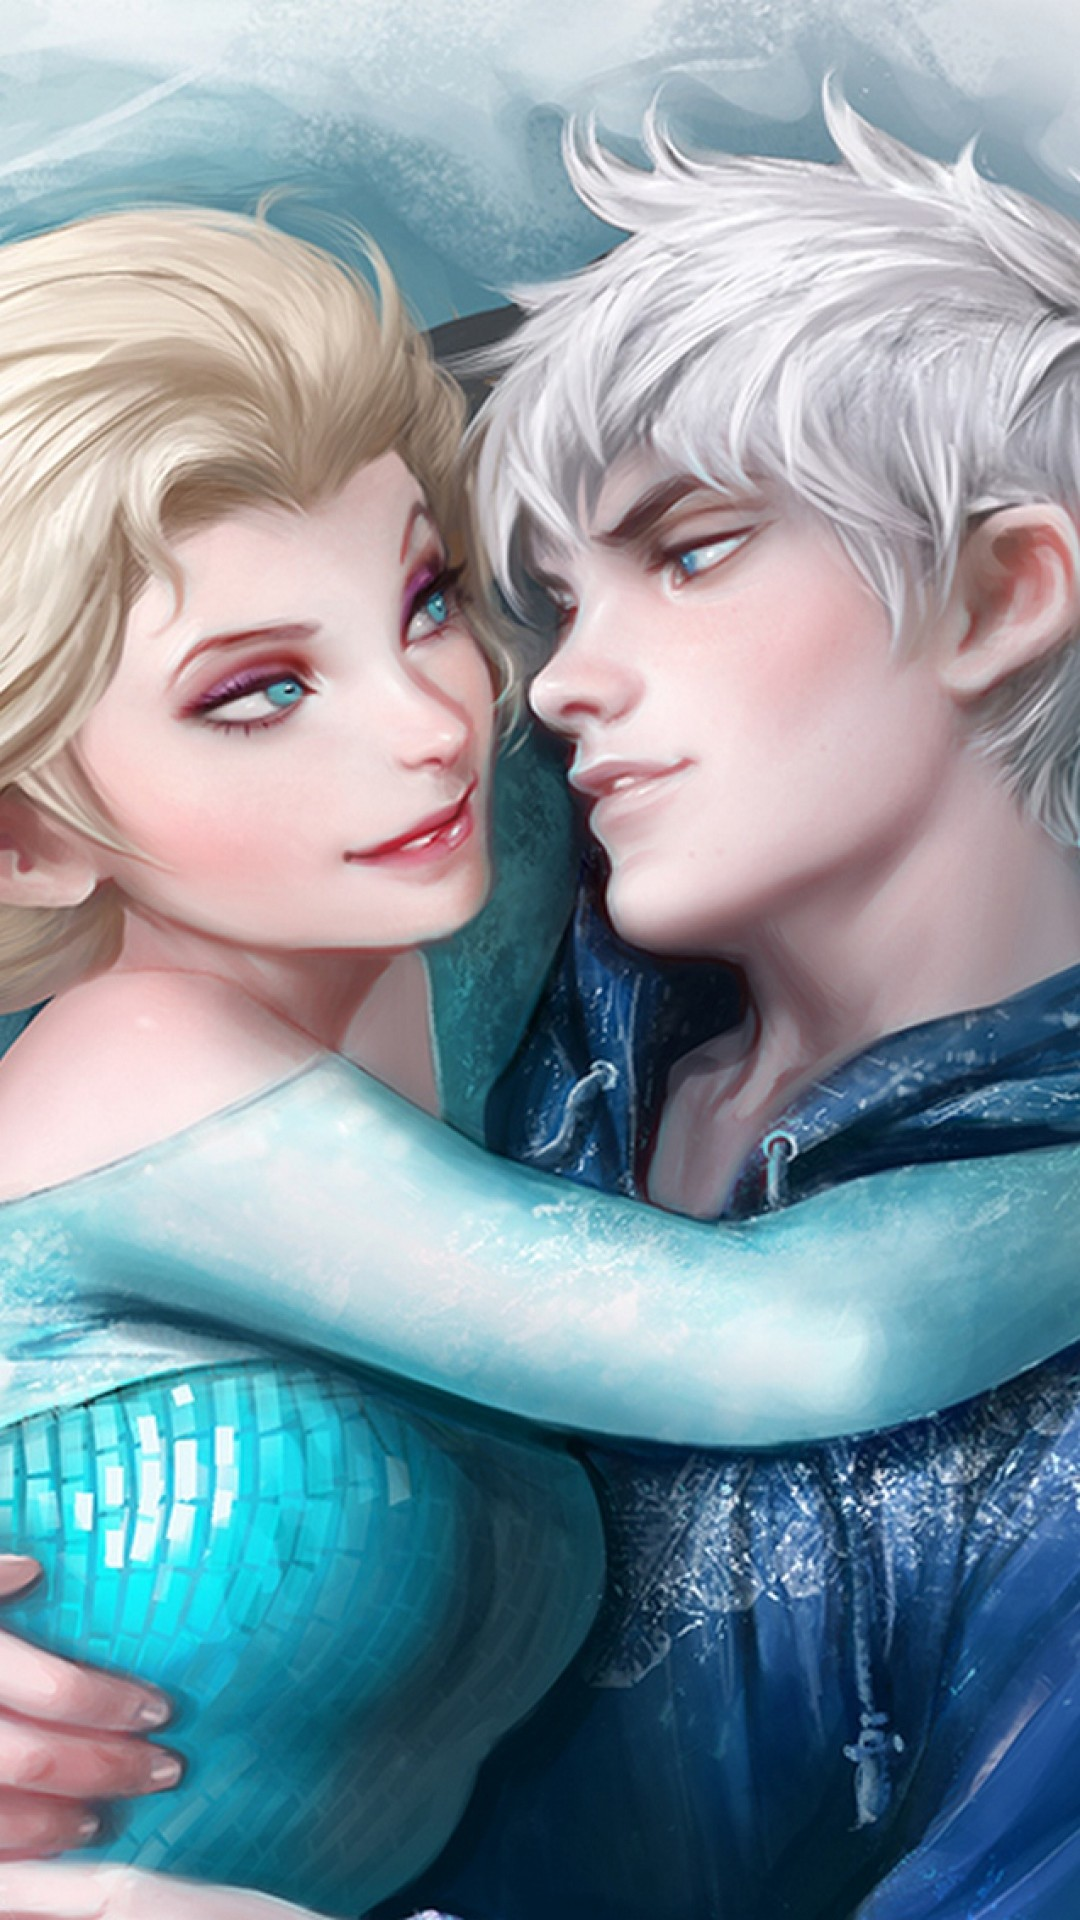 Hetalia Wallpaper Cute Jack Frost Wallpapers 66 Images